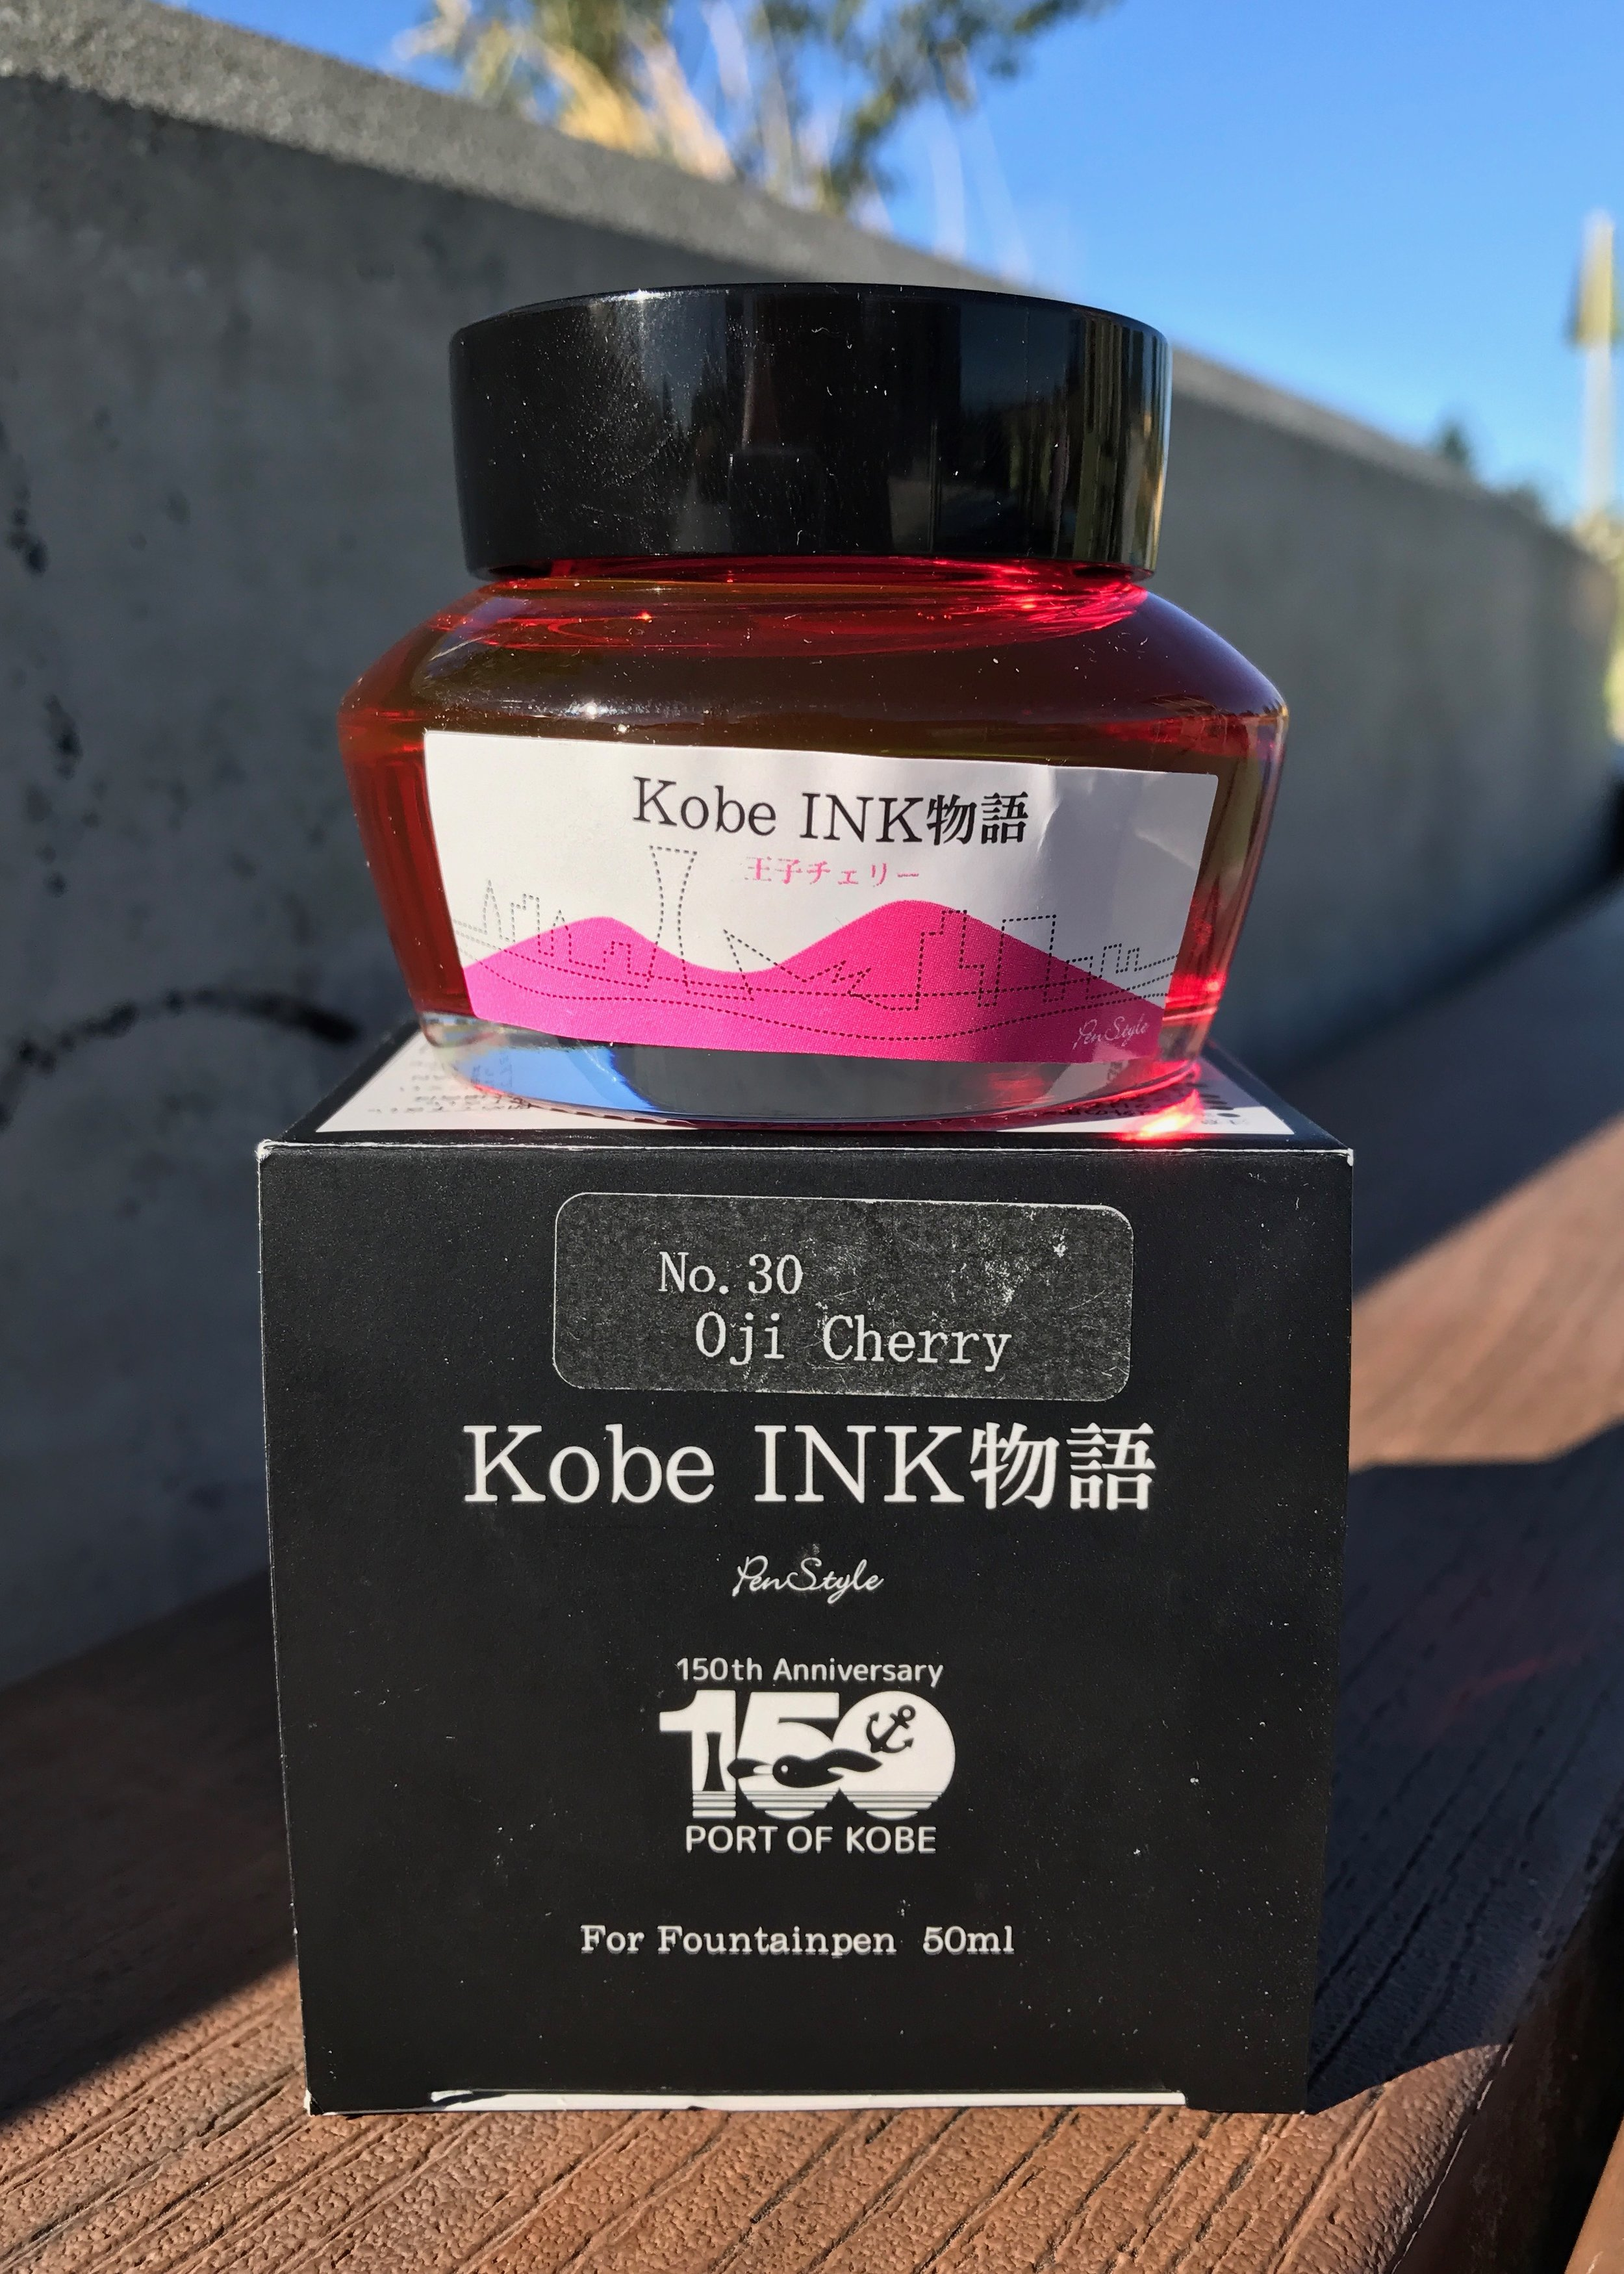 The bottle: - Kobe inks come in the standard Sailor bottles, but without the stupid ink misers.